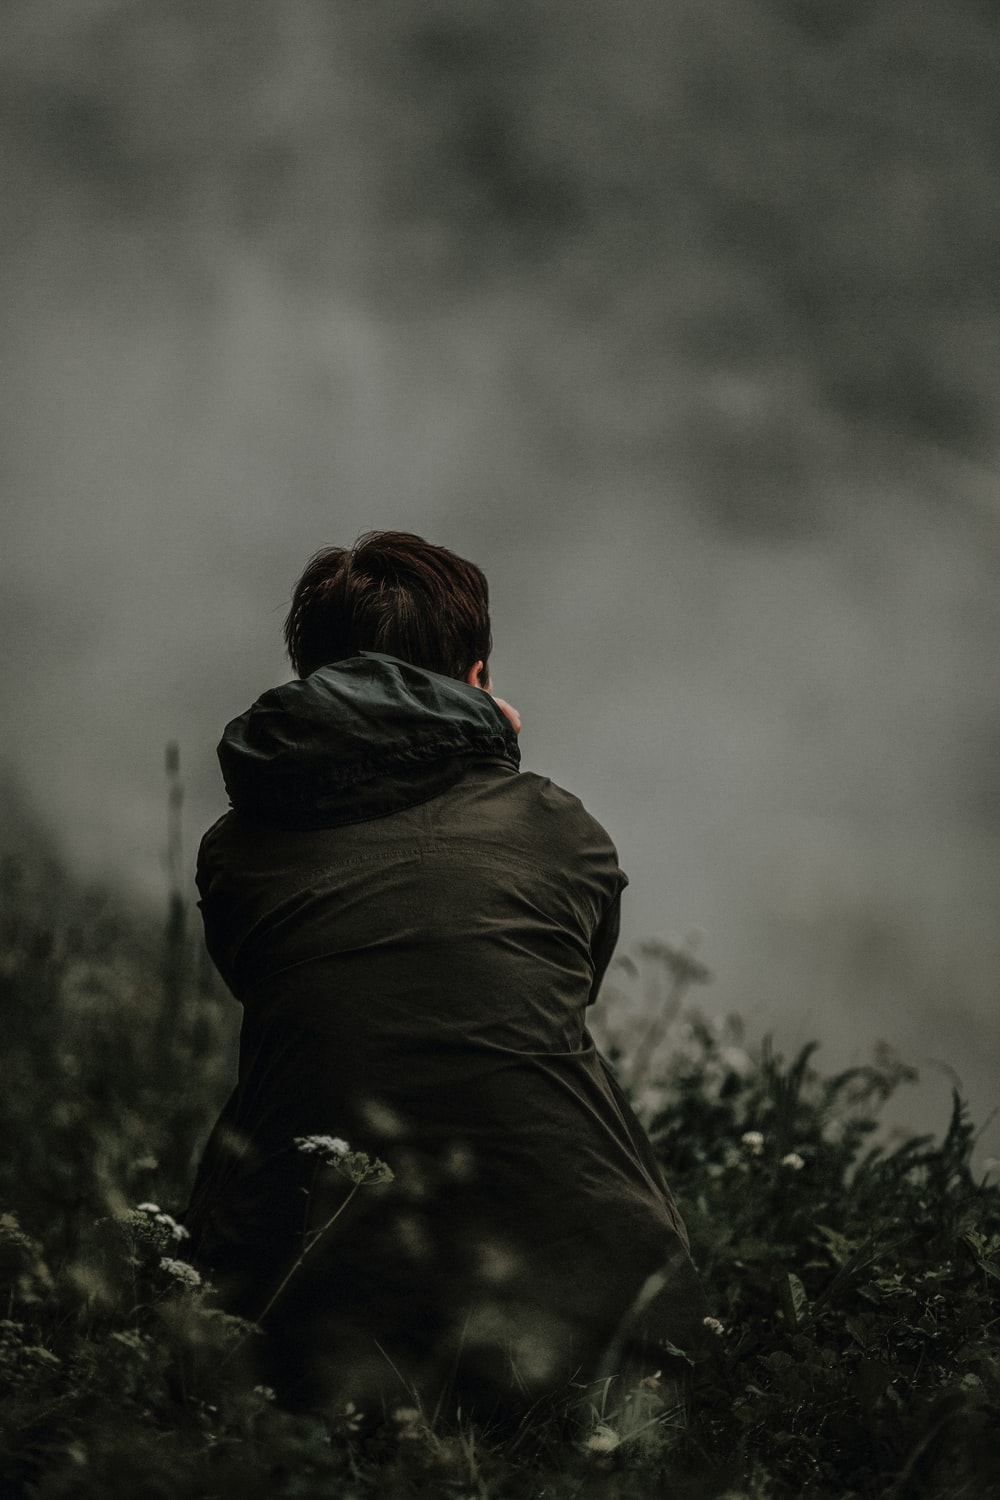 selective focus photo of person in black hooded jacket sitting on green grass field at daytime